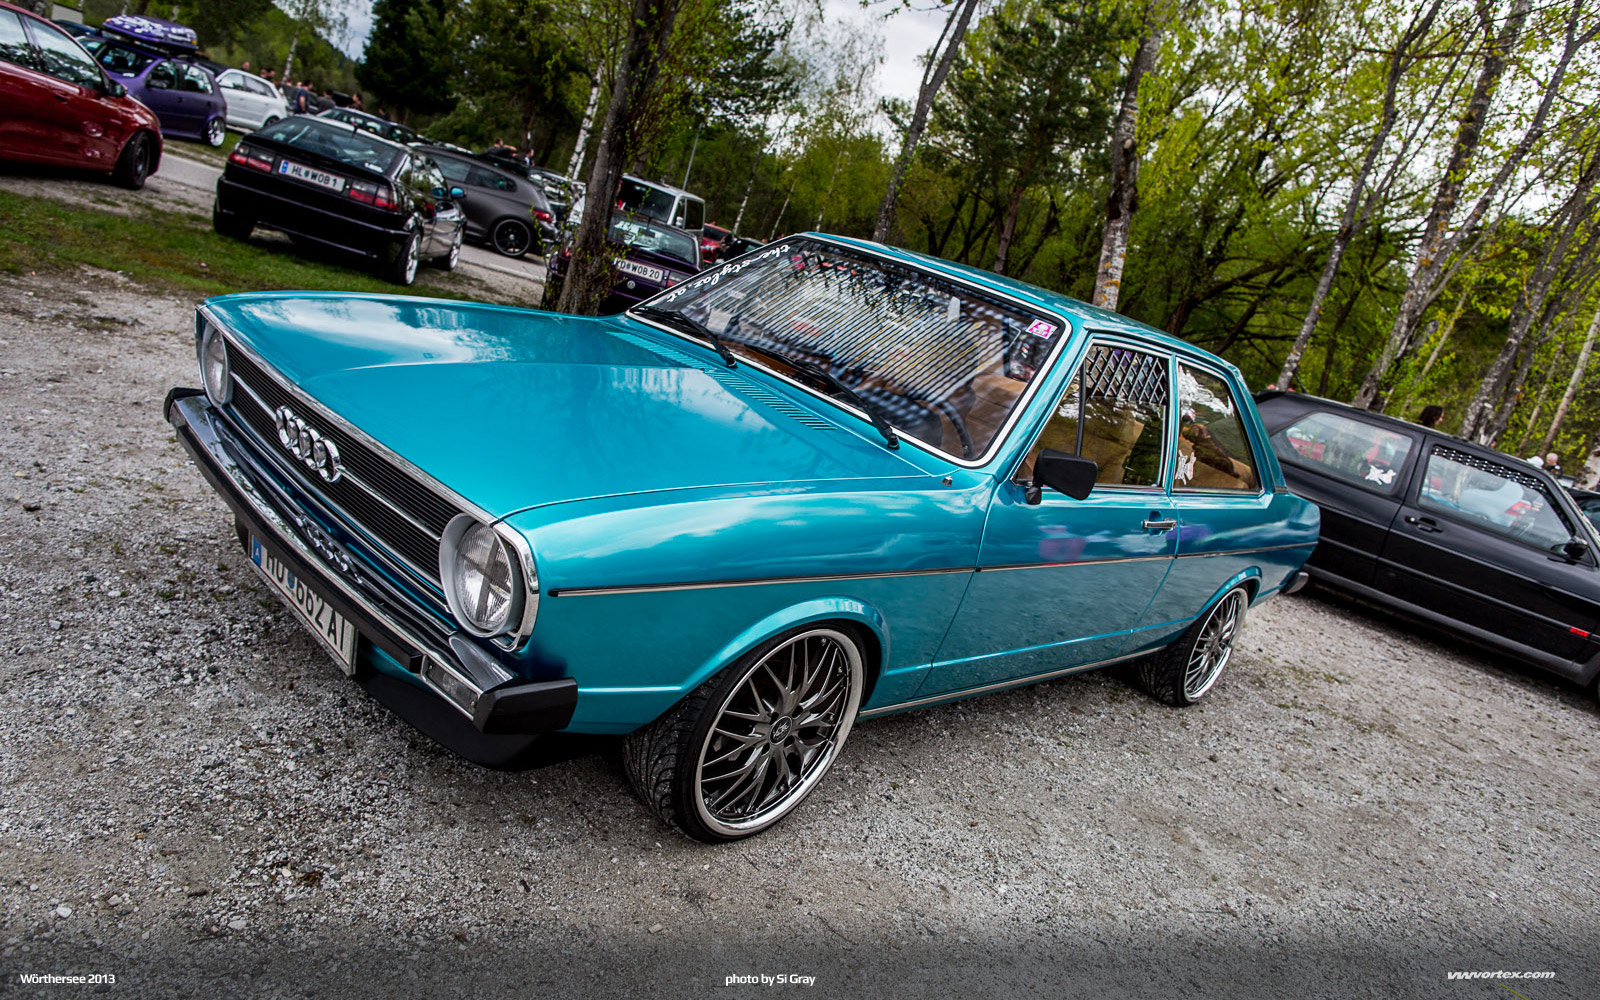 worthersee-2013-gallery-si-gray-044